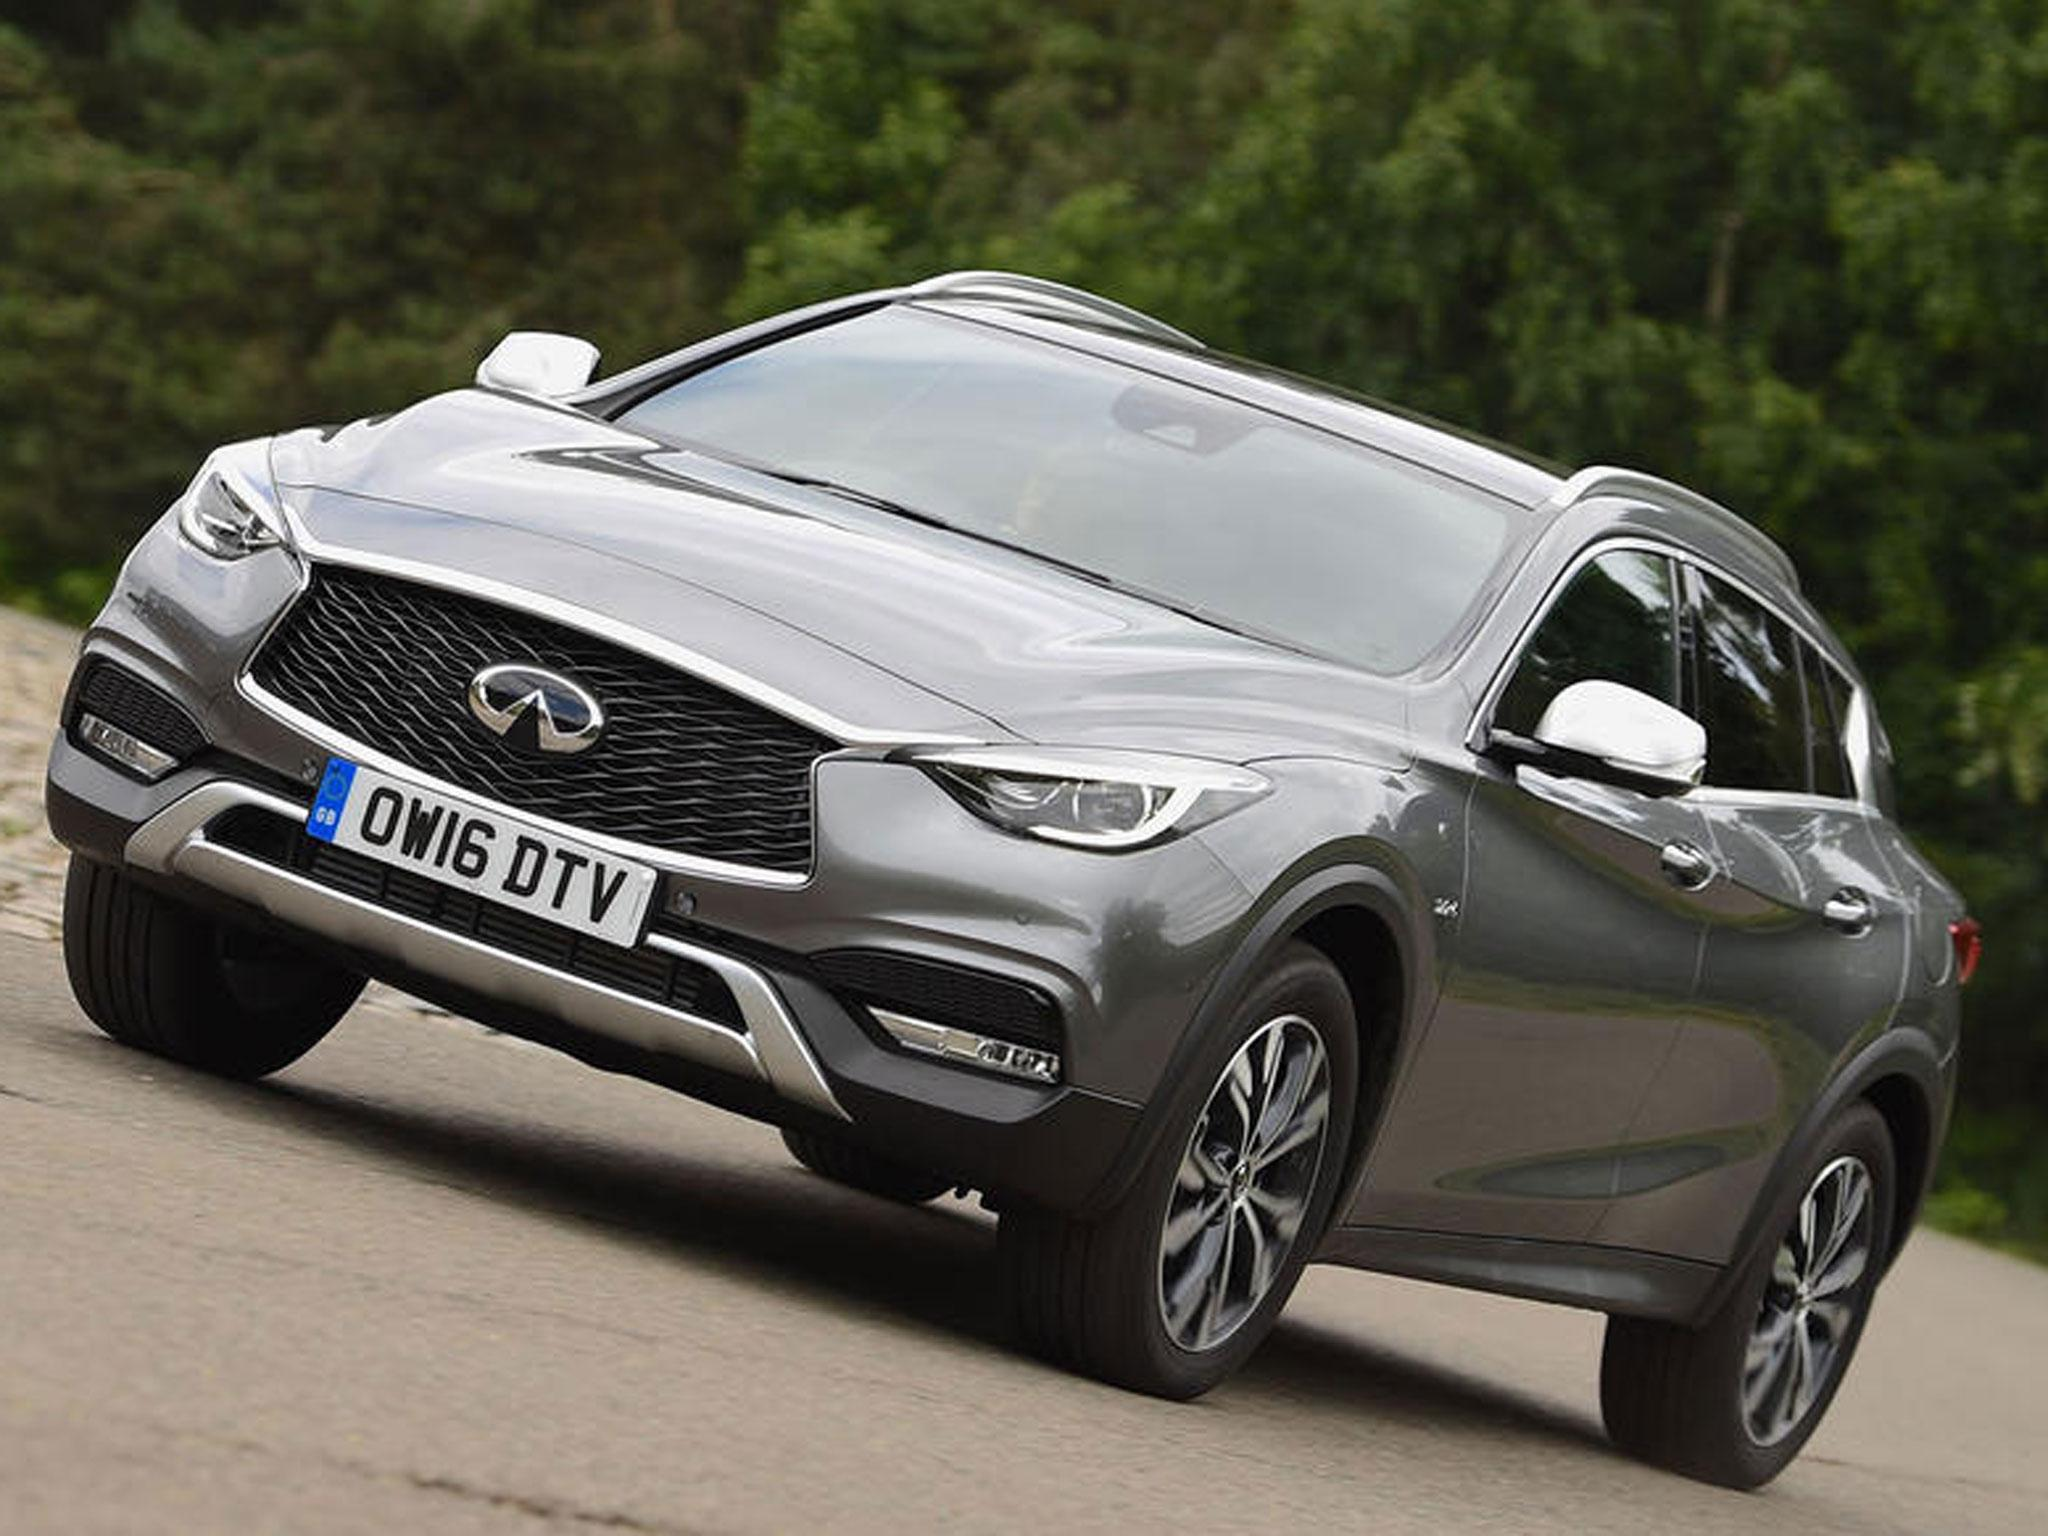 Infiniti qx30 premium tech car review crossover gets an x but lacks the x factor the independent